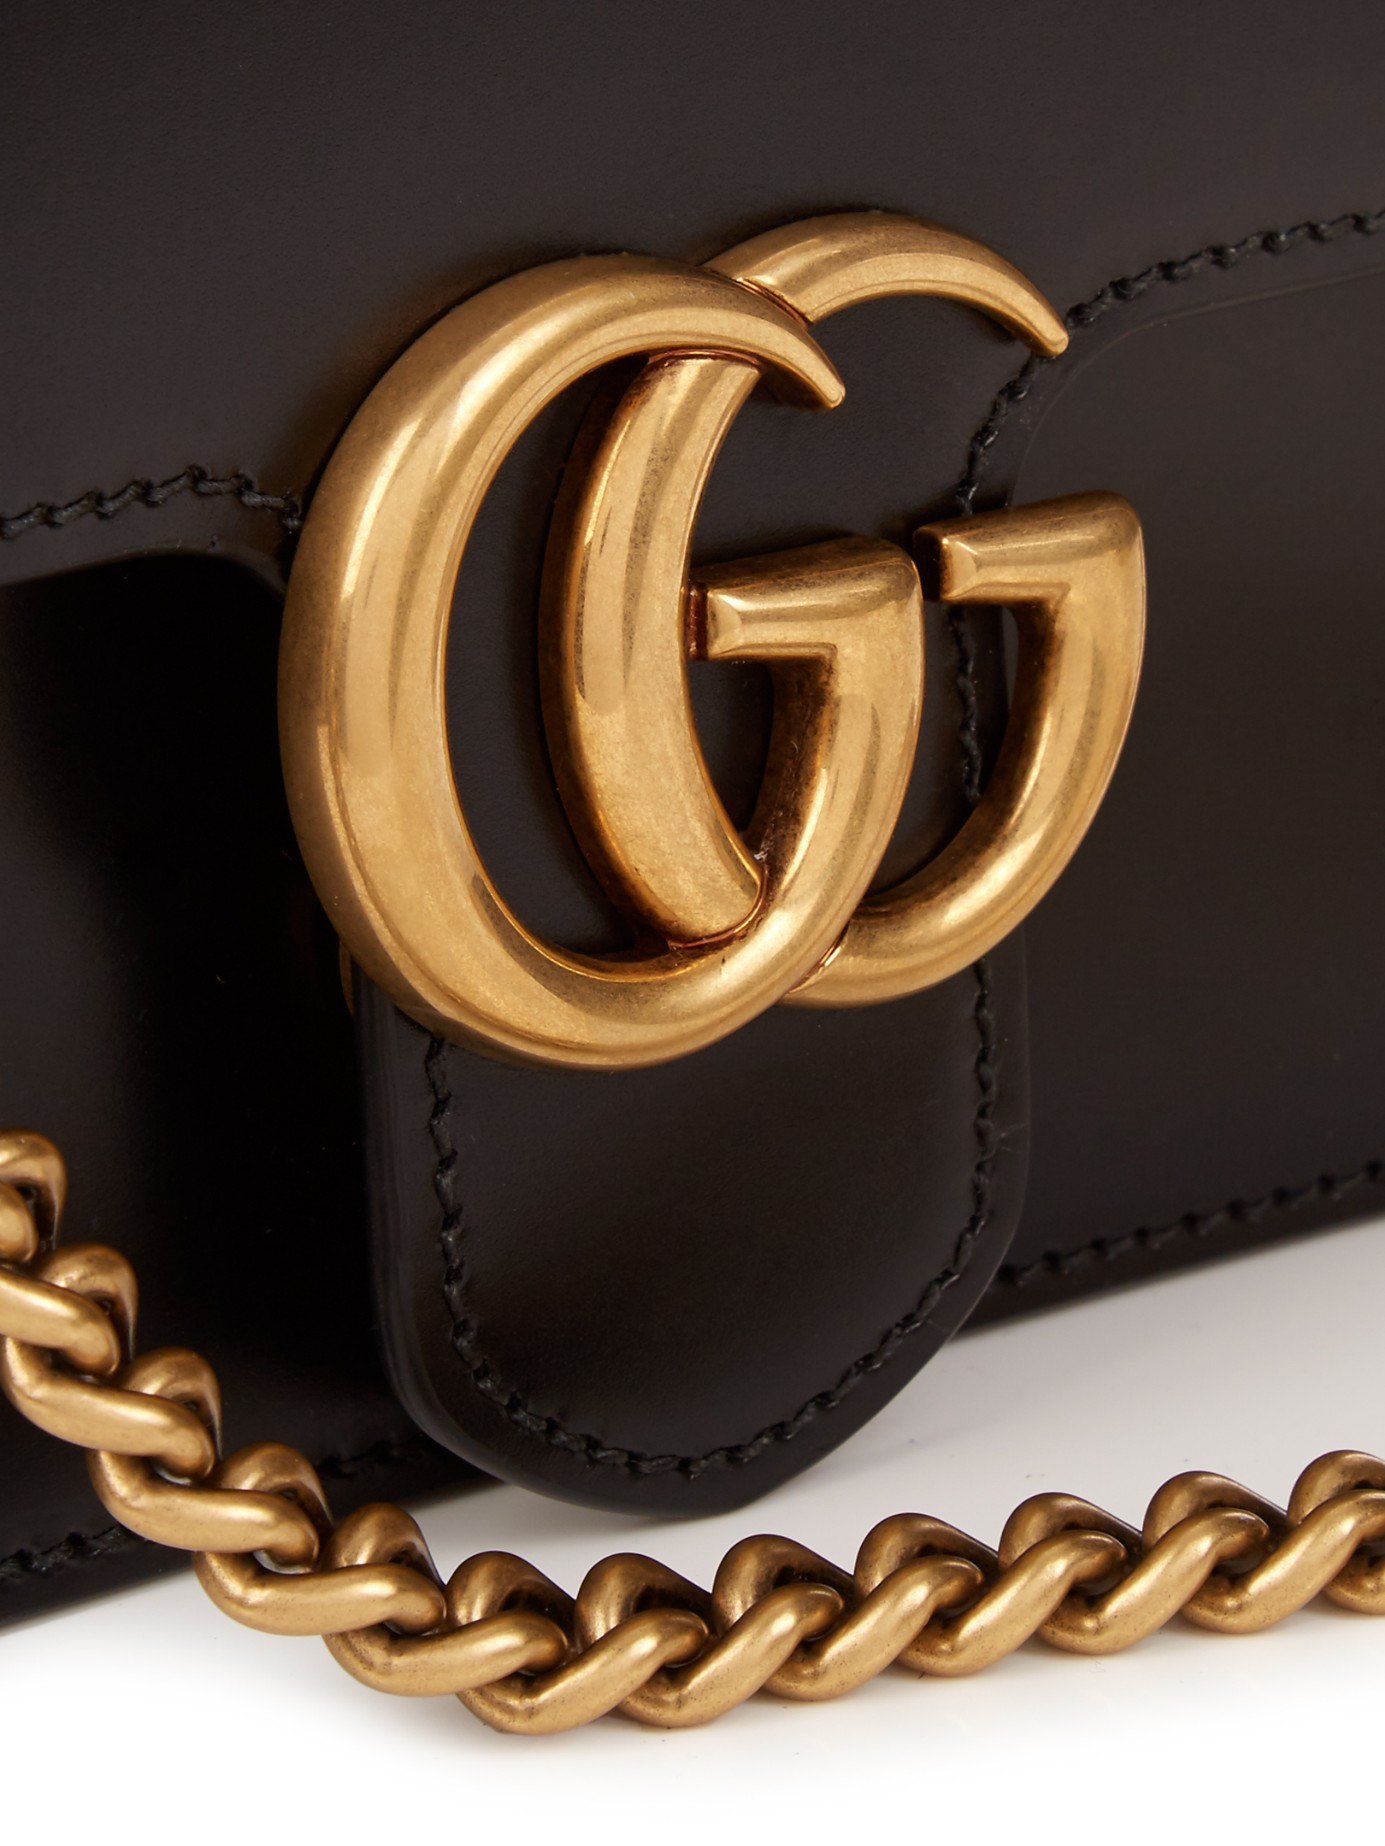 d7ac38e75155 Gucci Gg Marmont Leather Cross-body Bag in Black - Lyst